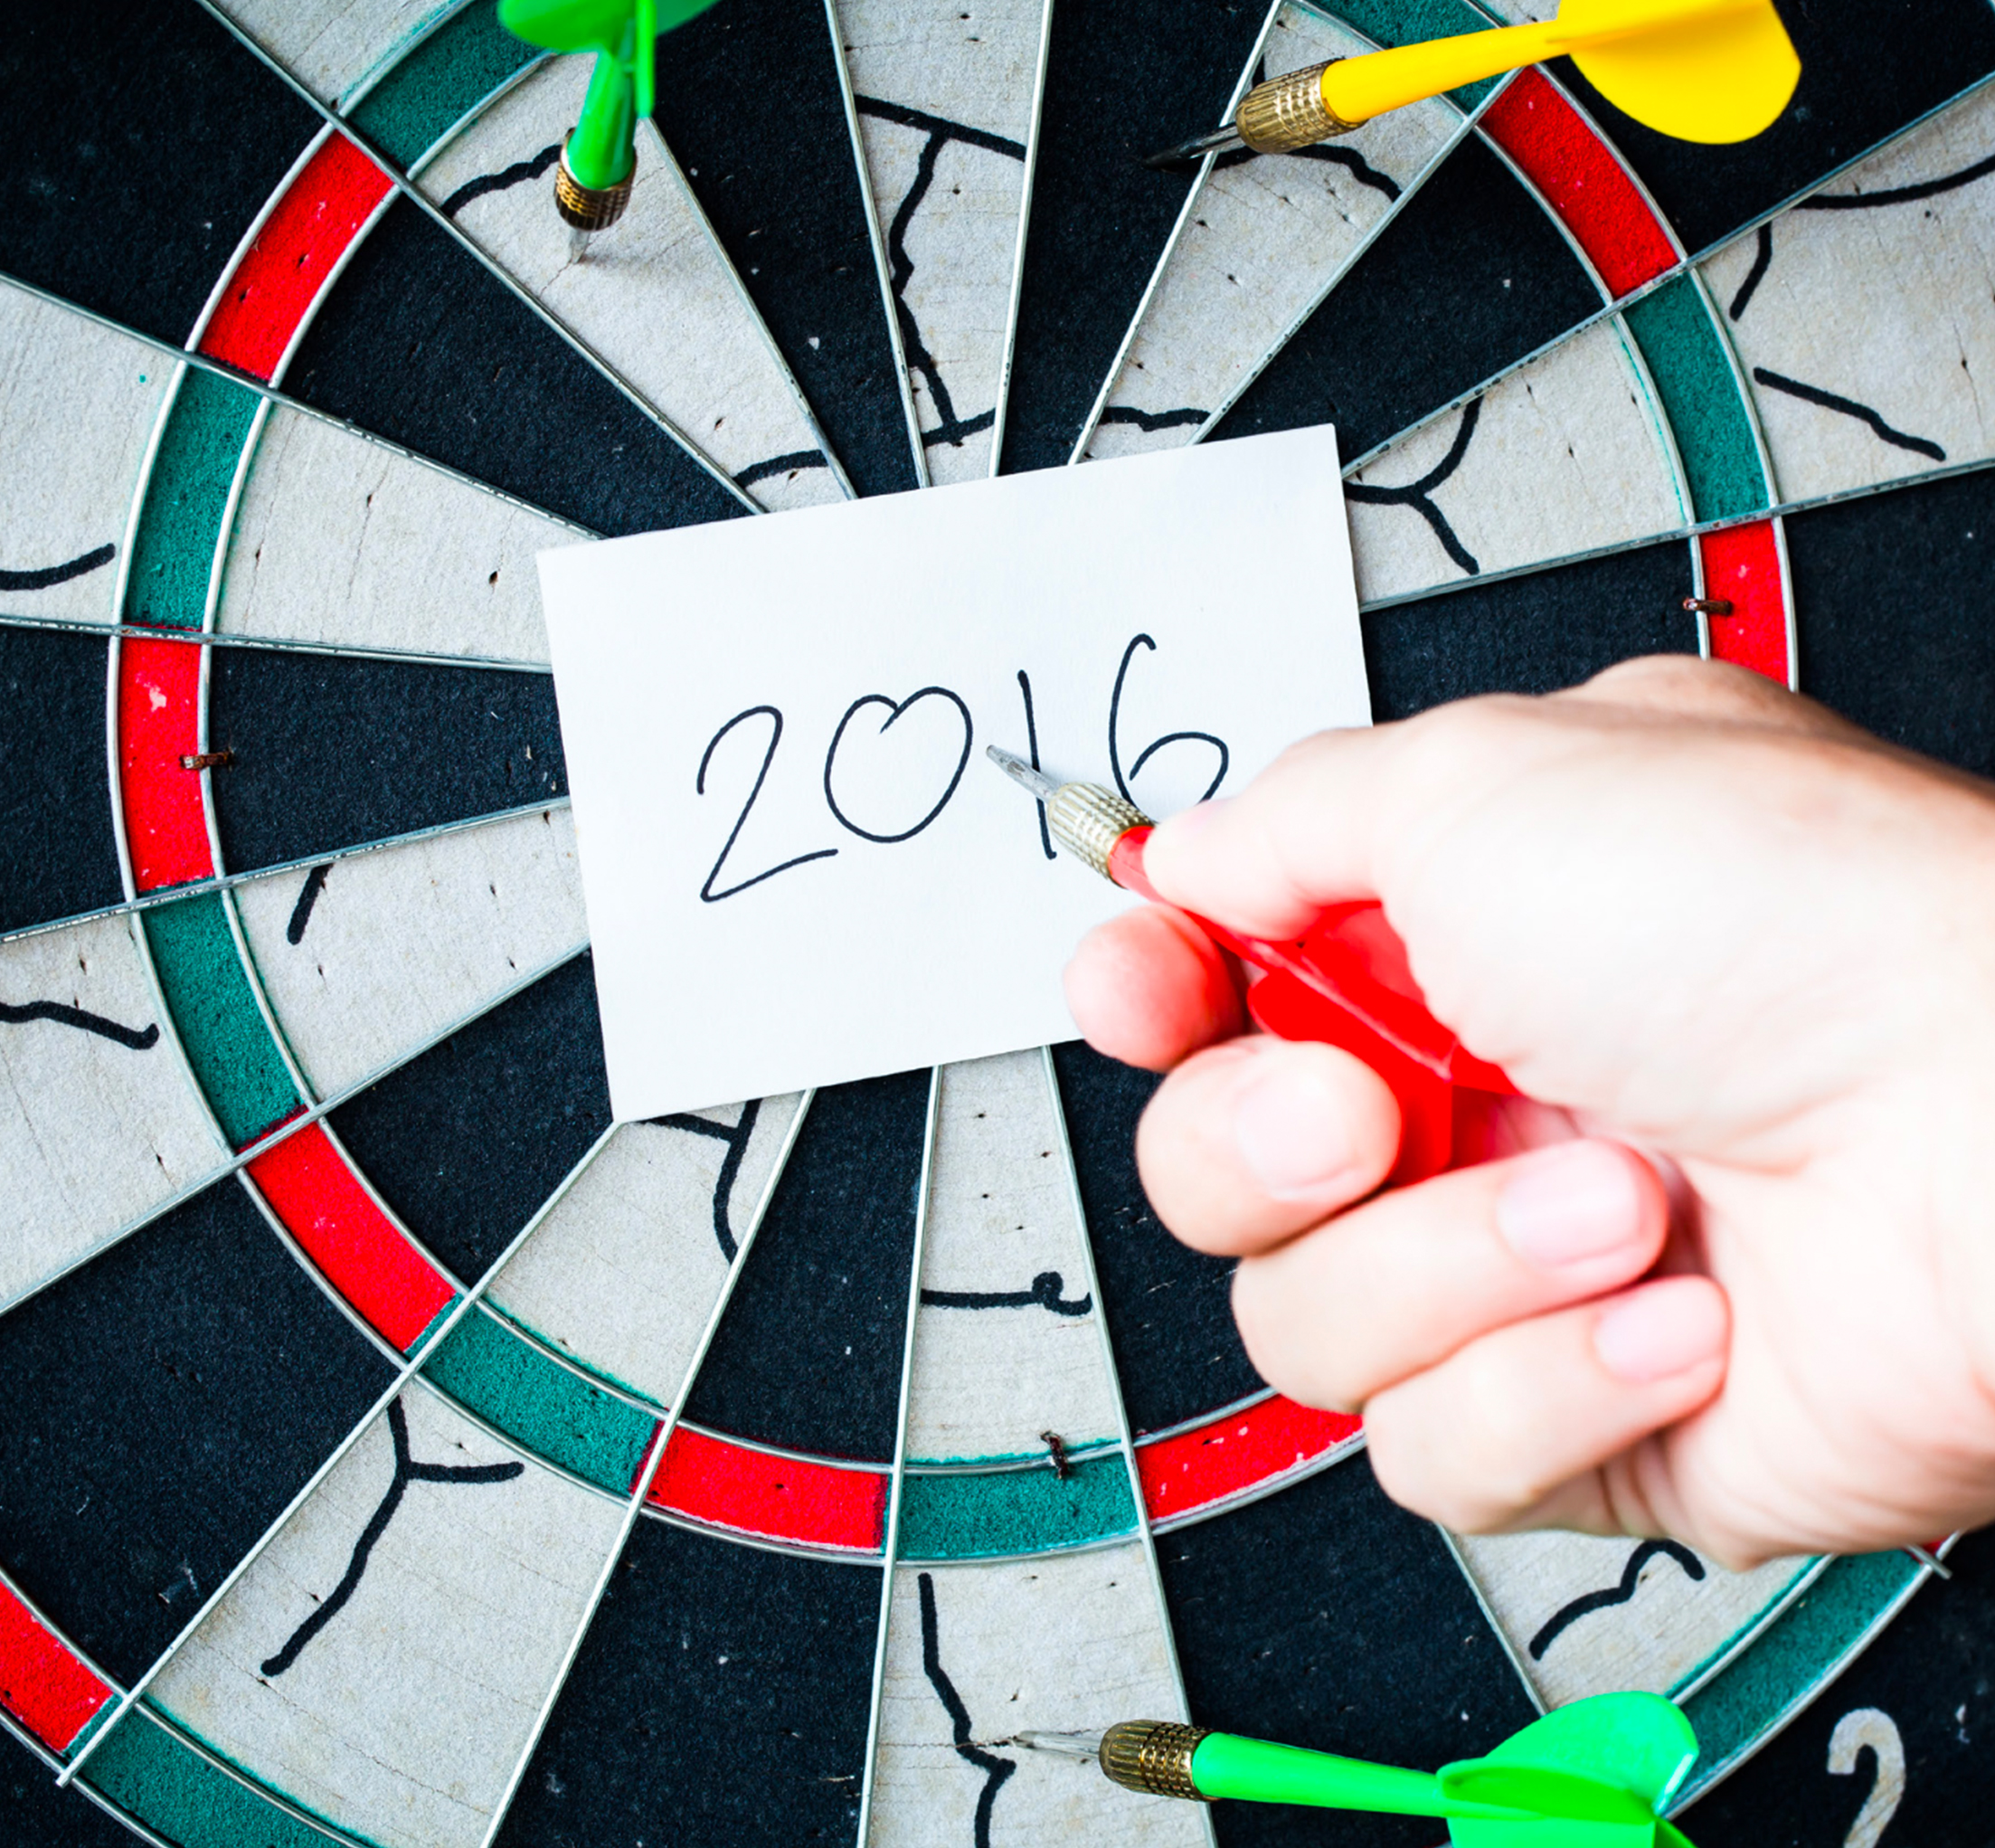 Prospects for 2016 -